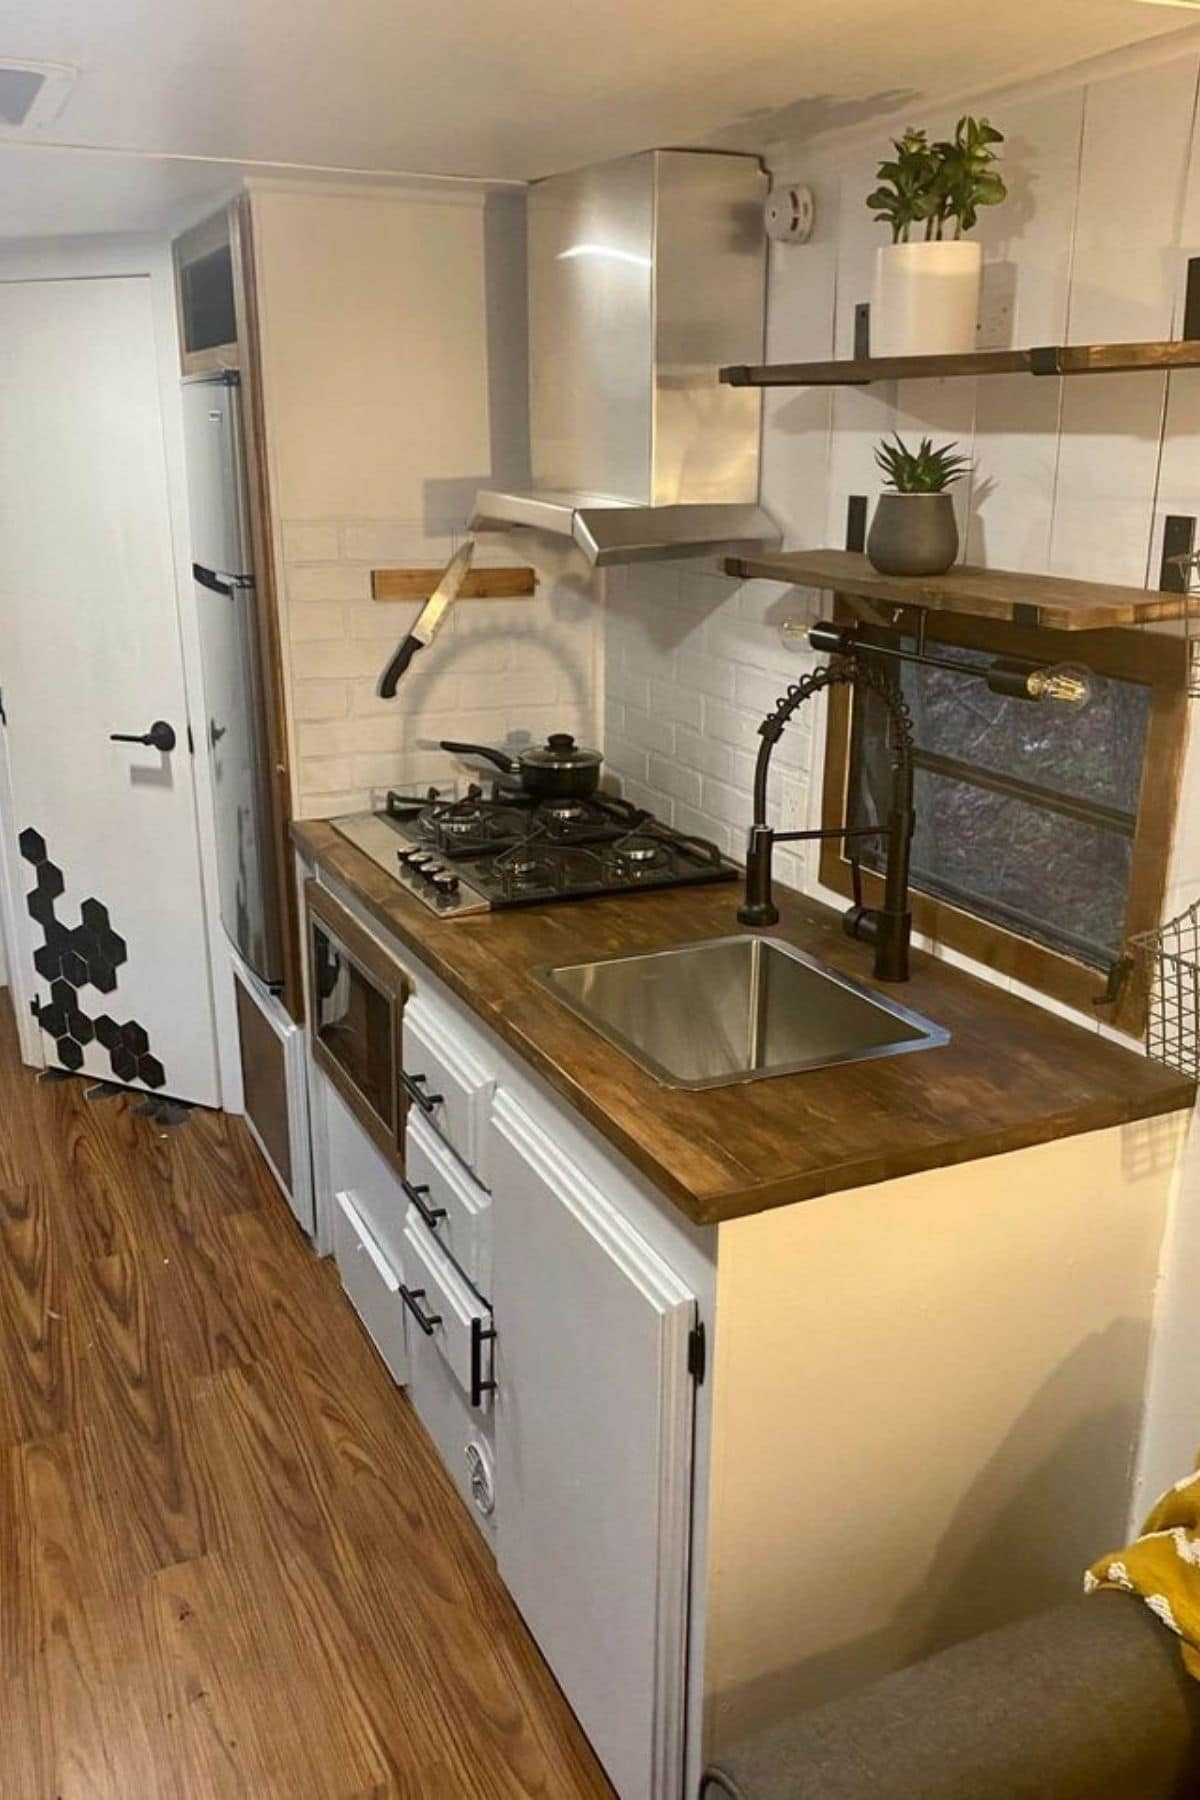 Kitchenette with sink and RV stove in white cabinets